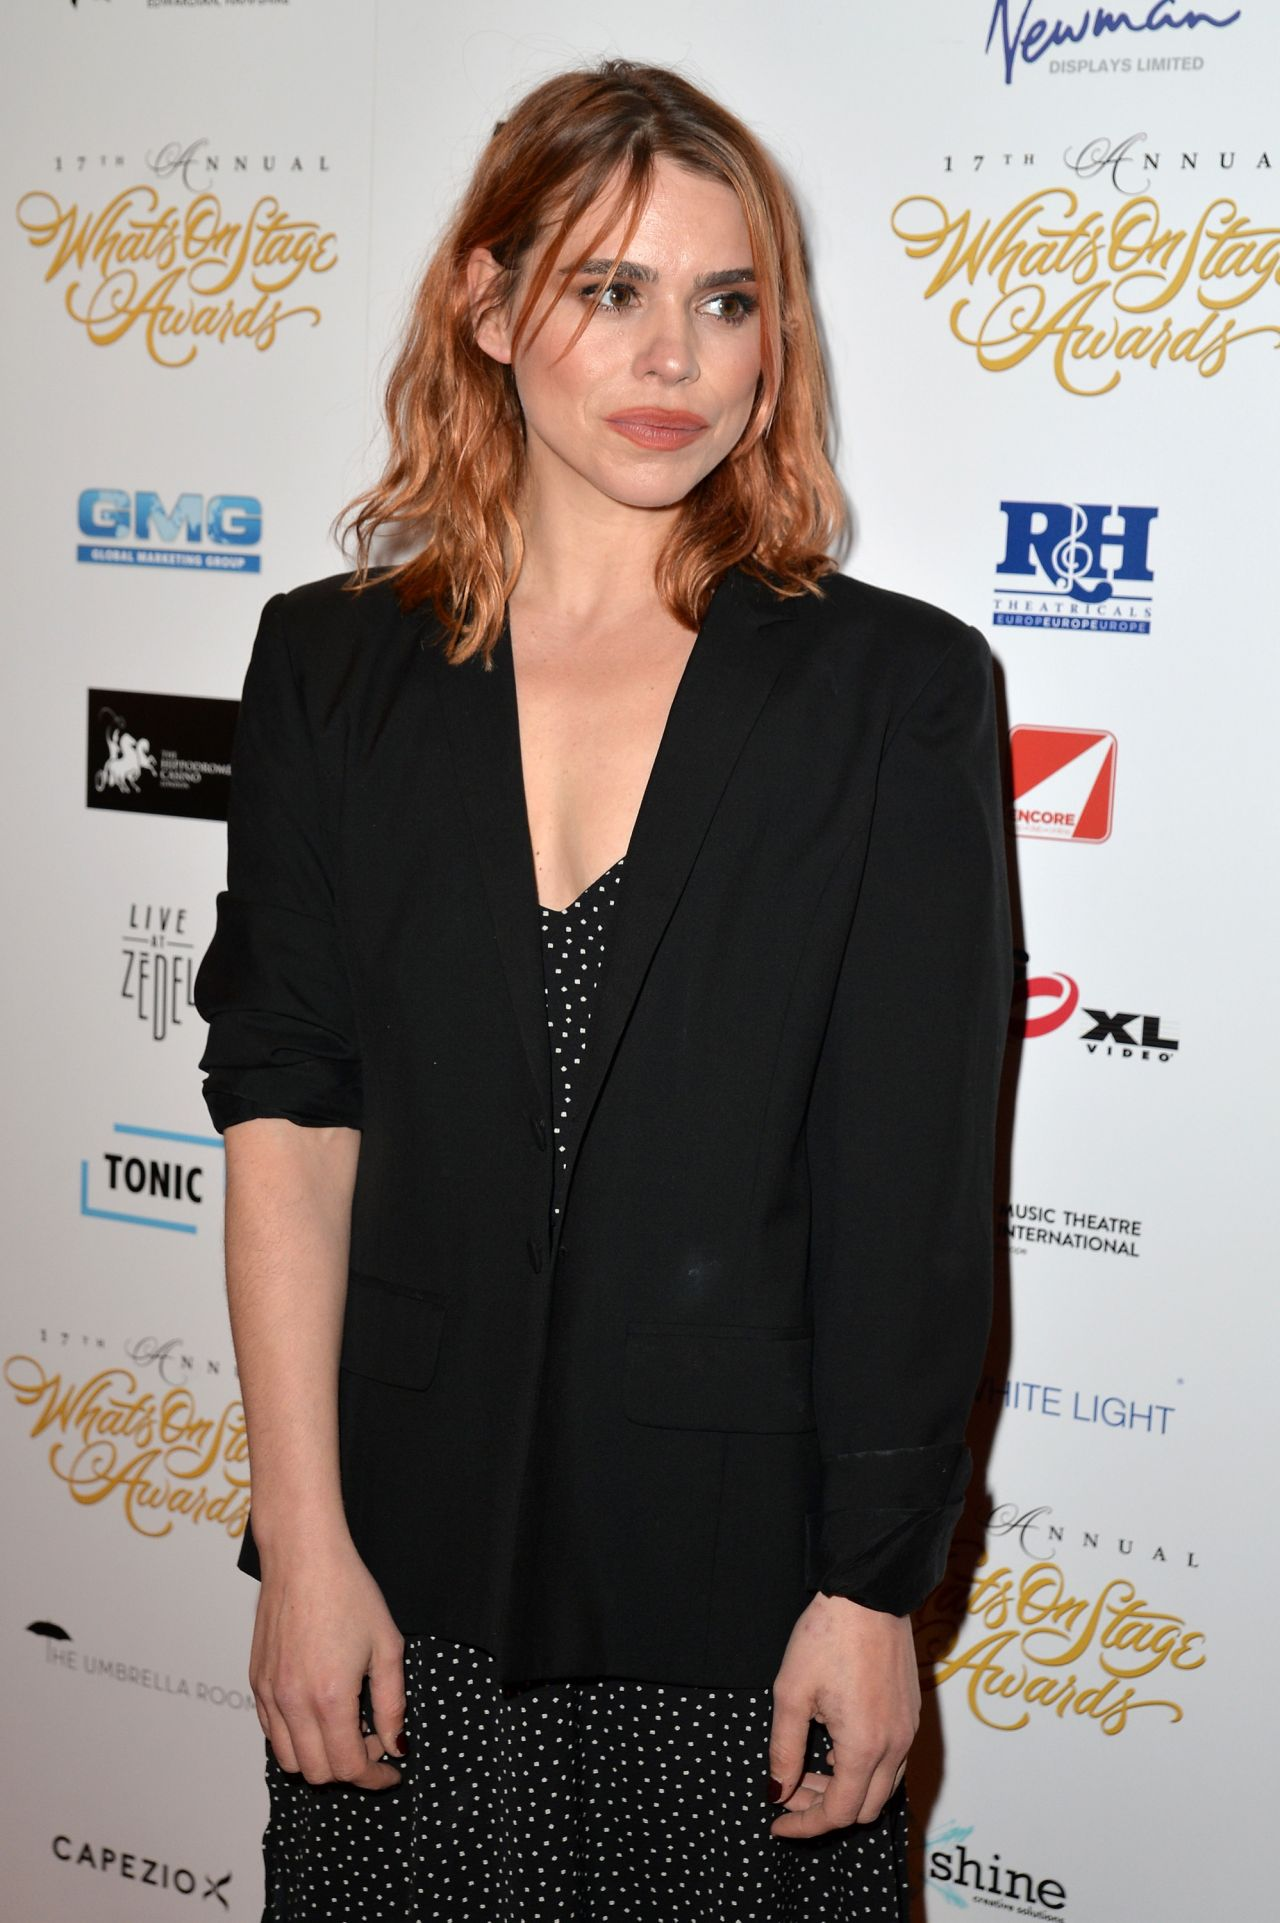 Billie Piper 17th Annual Whatsonstage Awards In London 2